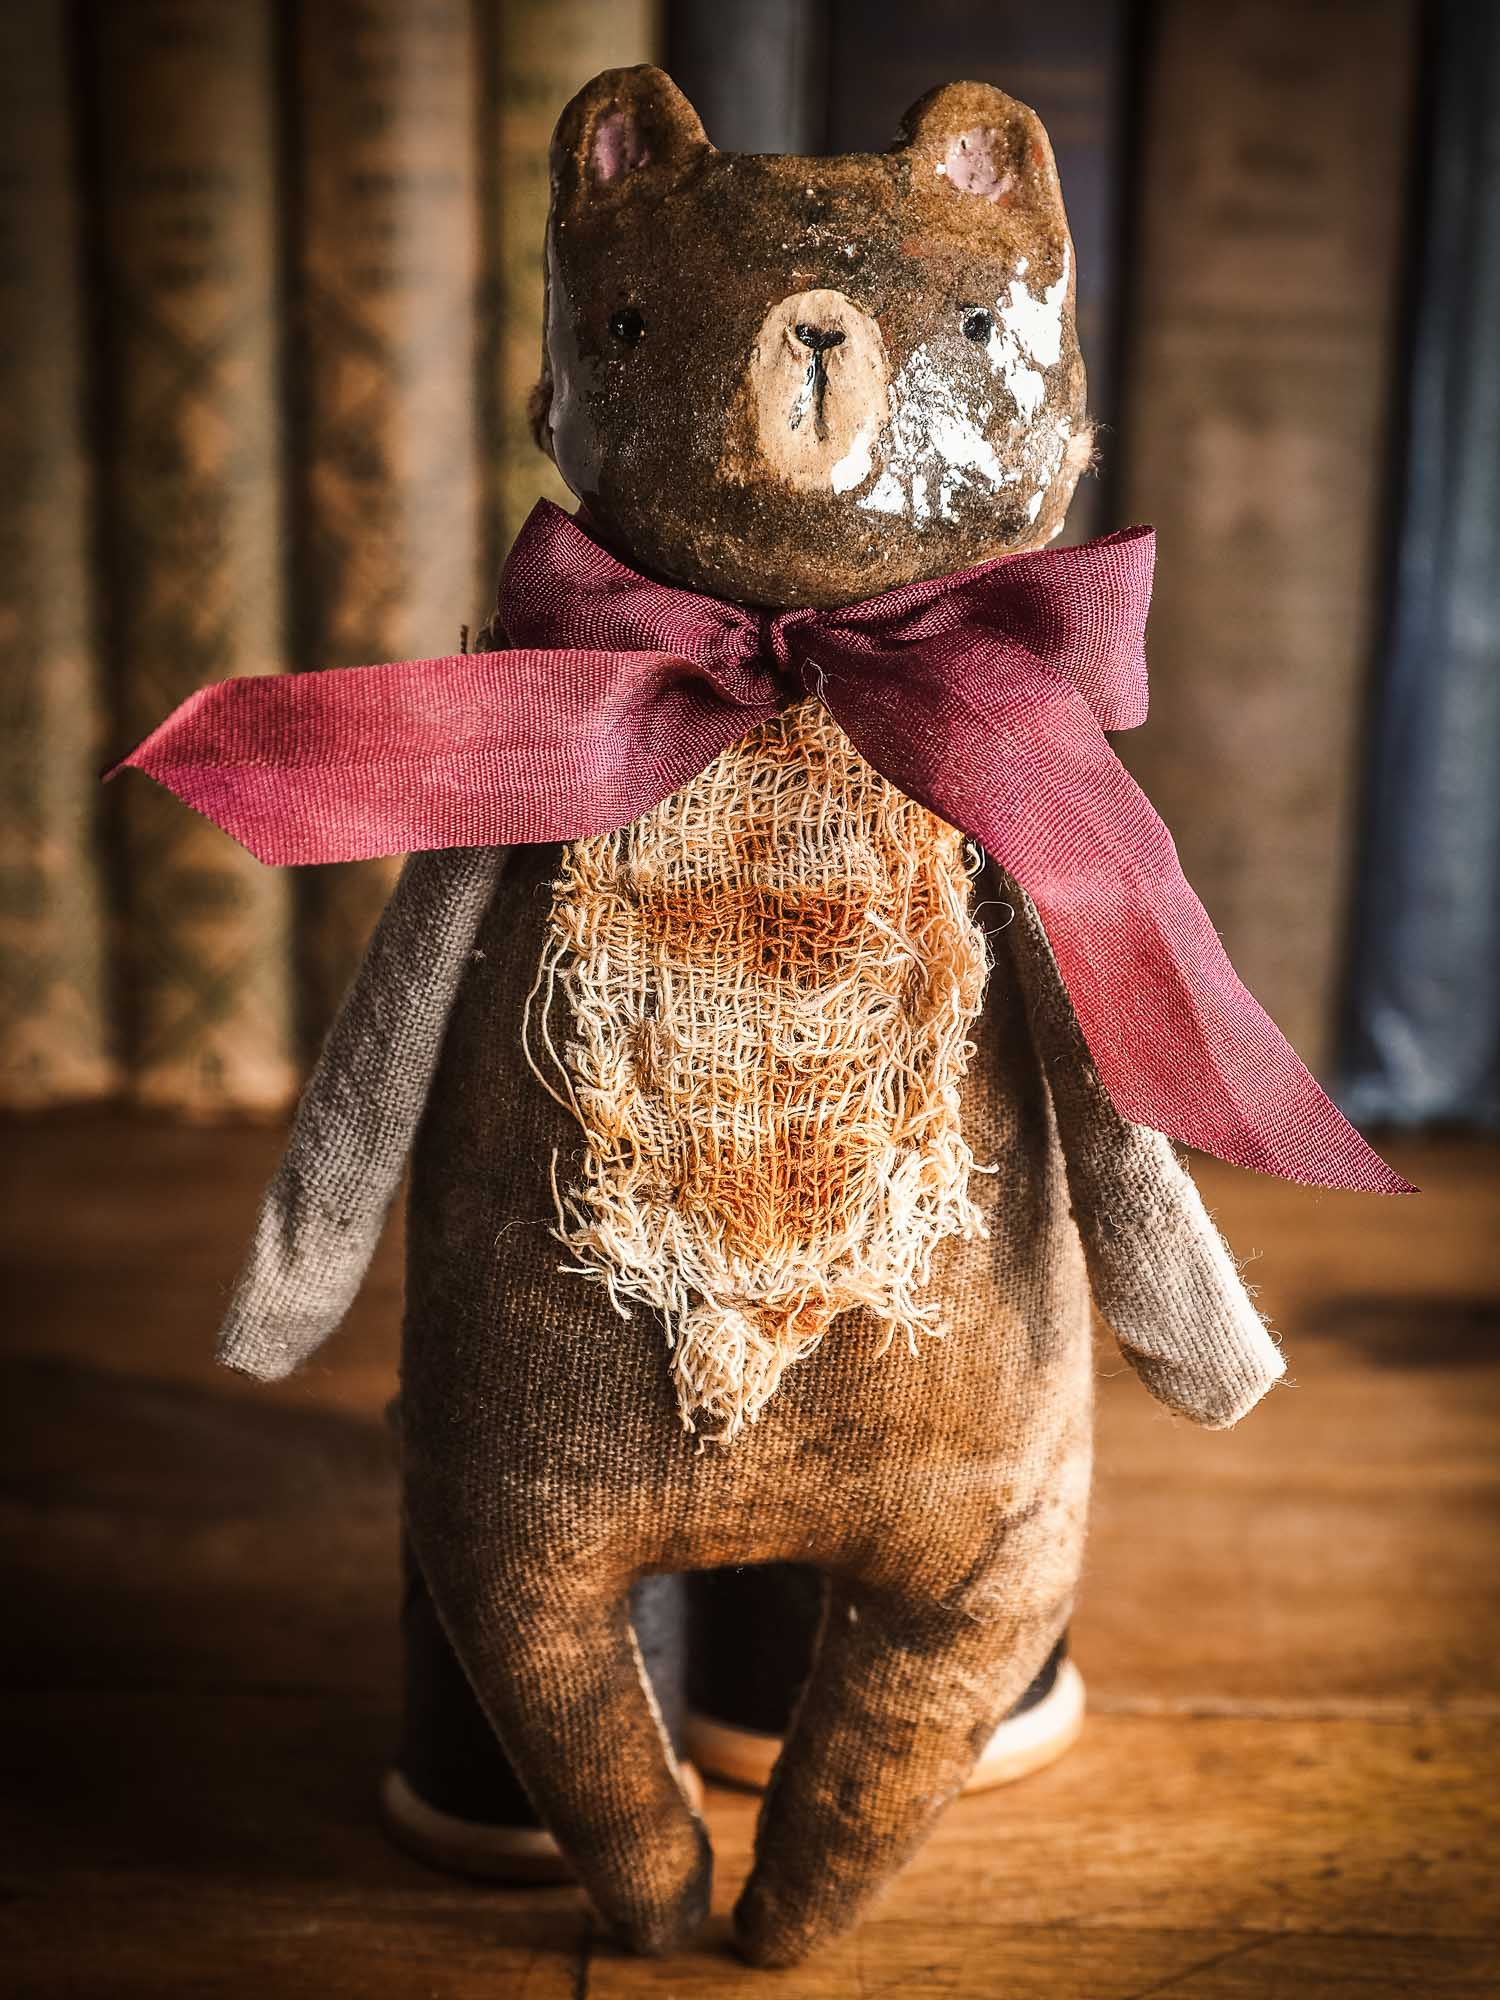 Brown Bear Woodlands Soft sculpture toy art doll by Idania Salcido Danita Art with a Handmade ceramics face, organic dyed fabric and silk bow